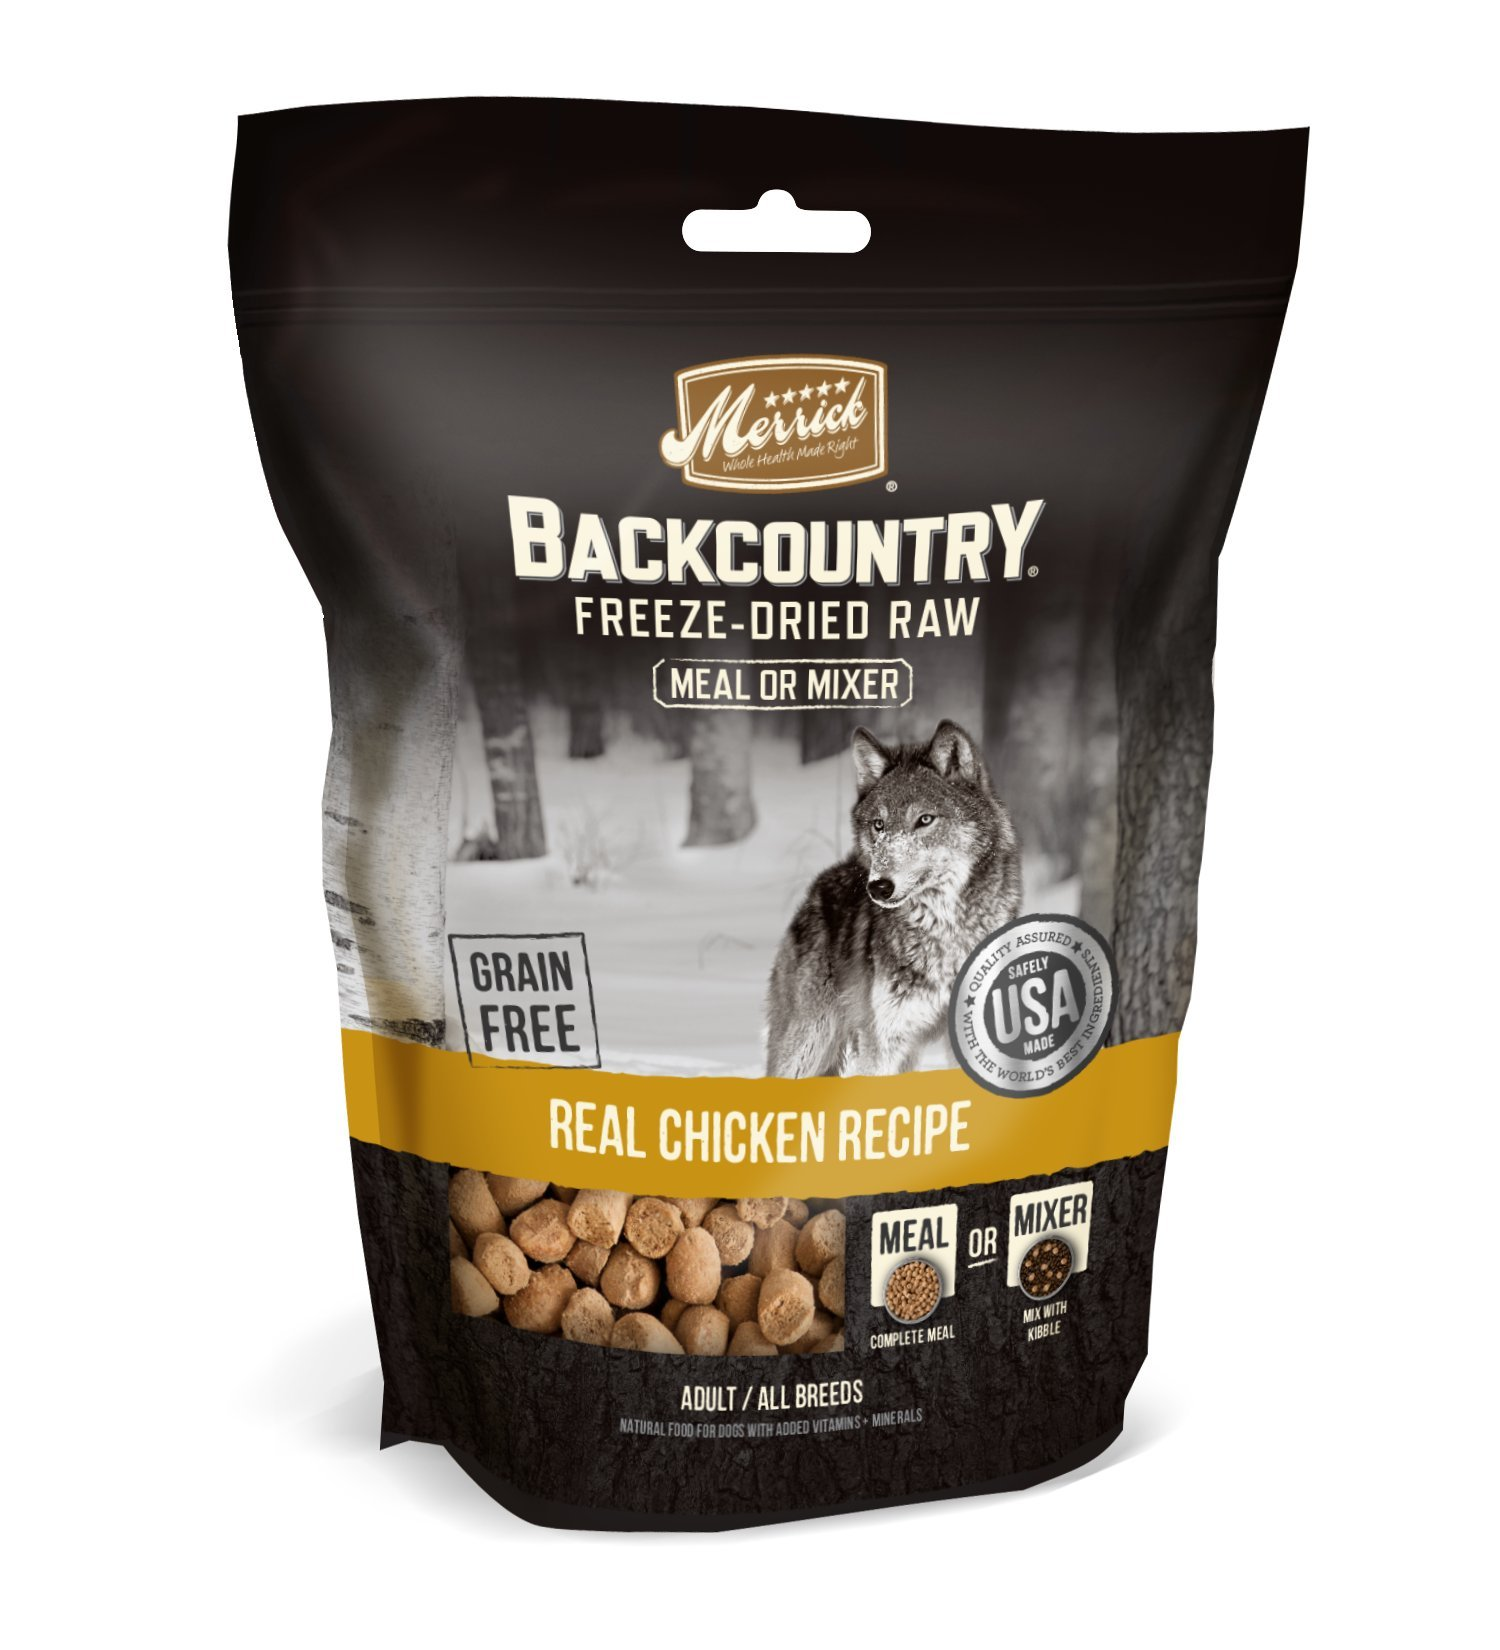 Merrick Backcountry Freeze-Dried Raw Real Chicken Recipe Meal or Mixer Grain Free Adult Dog Food, 12.5 oz.